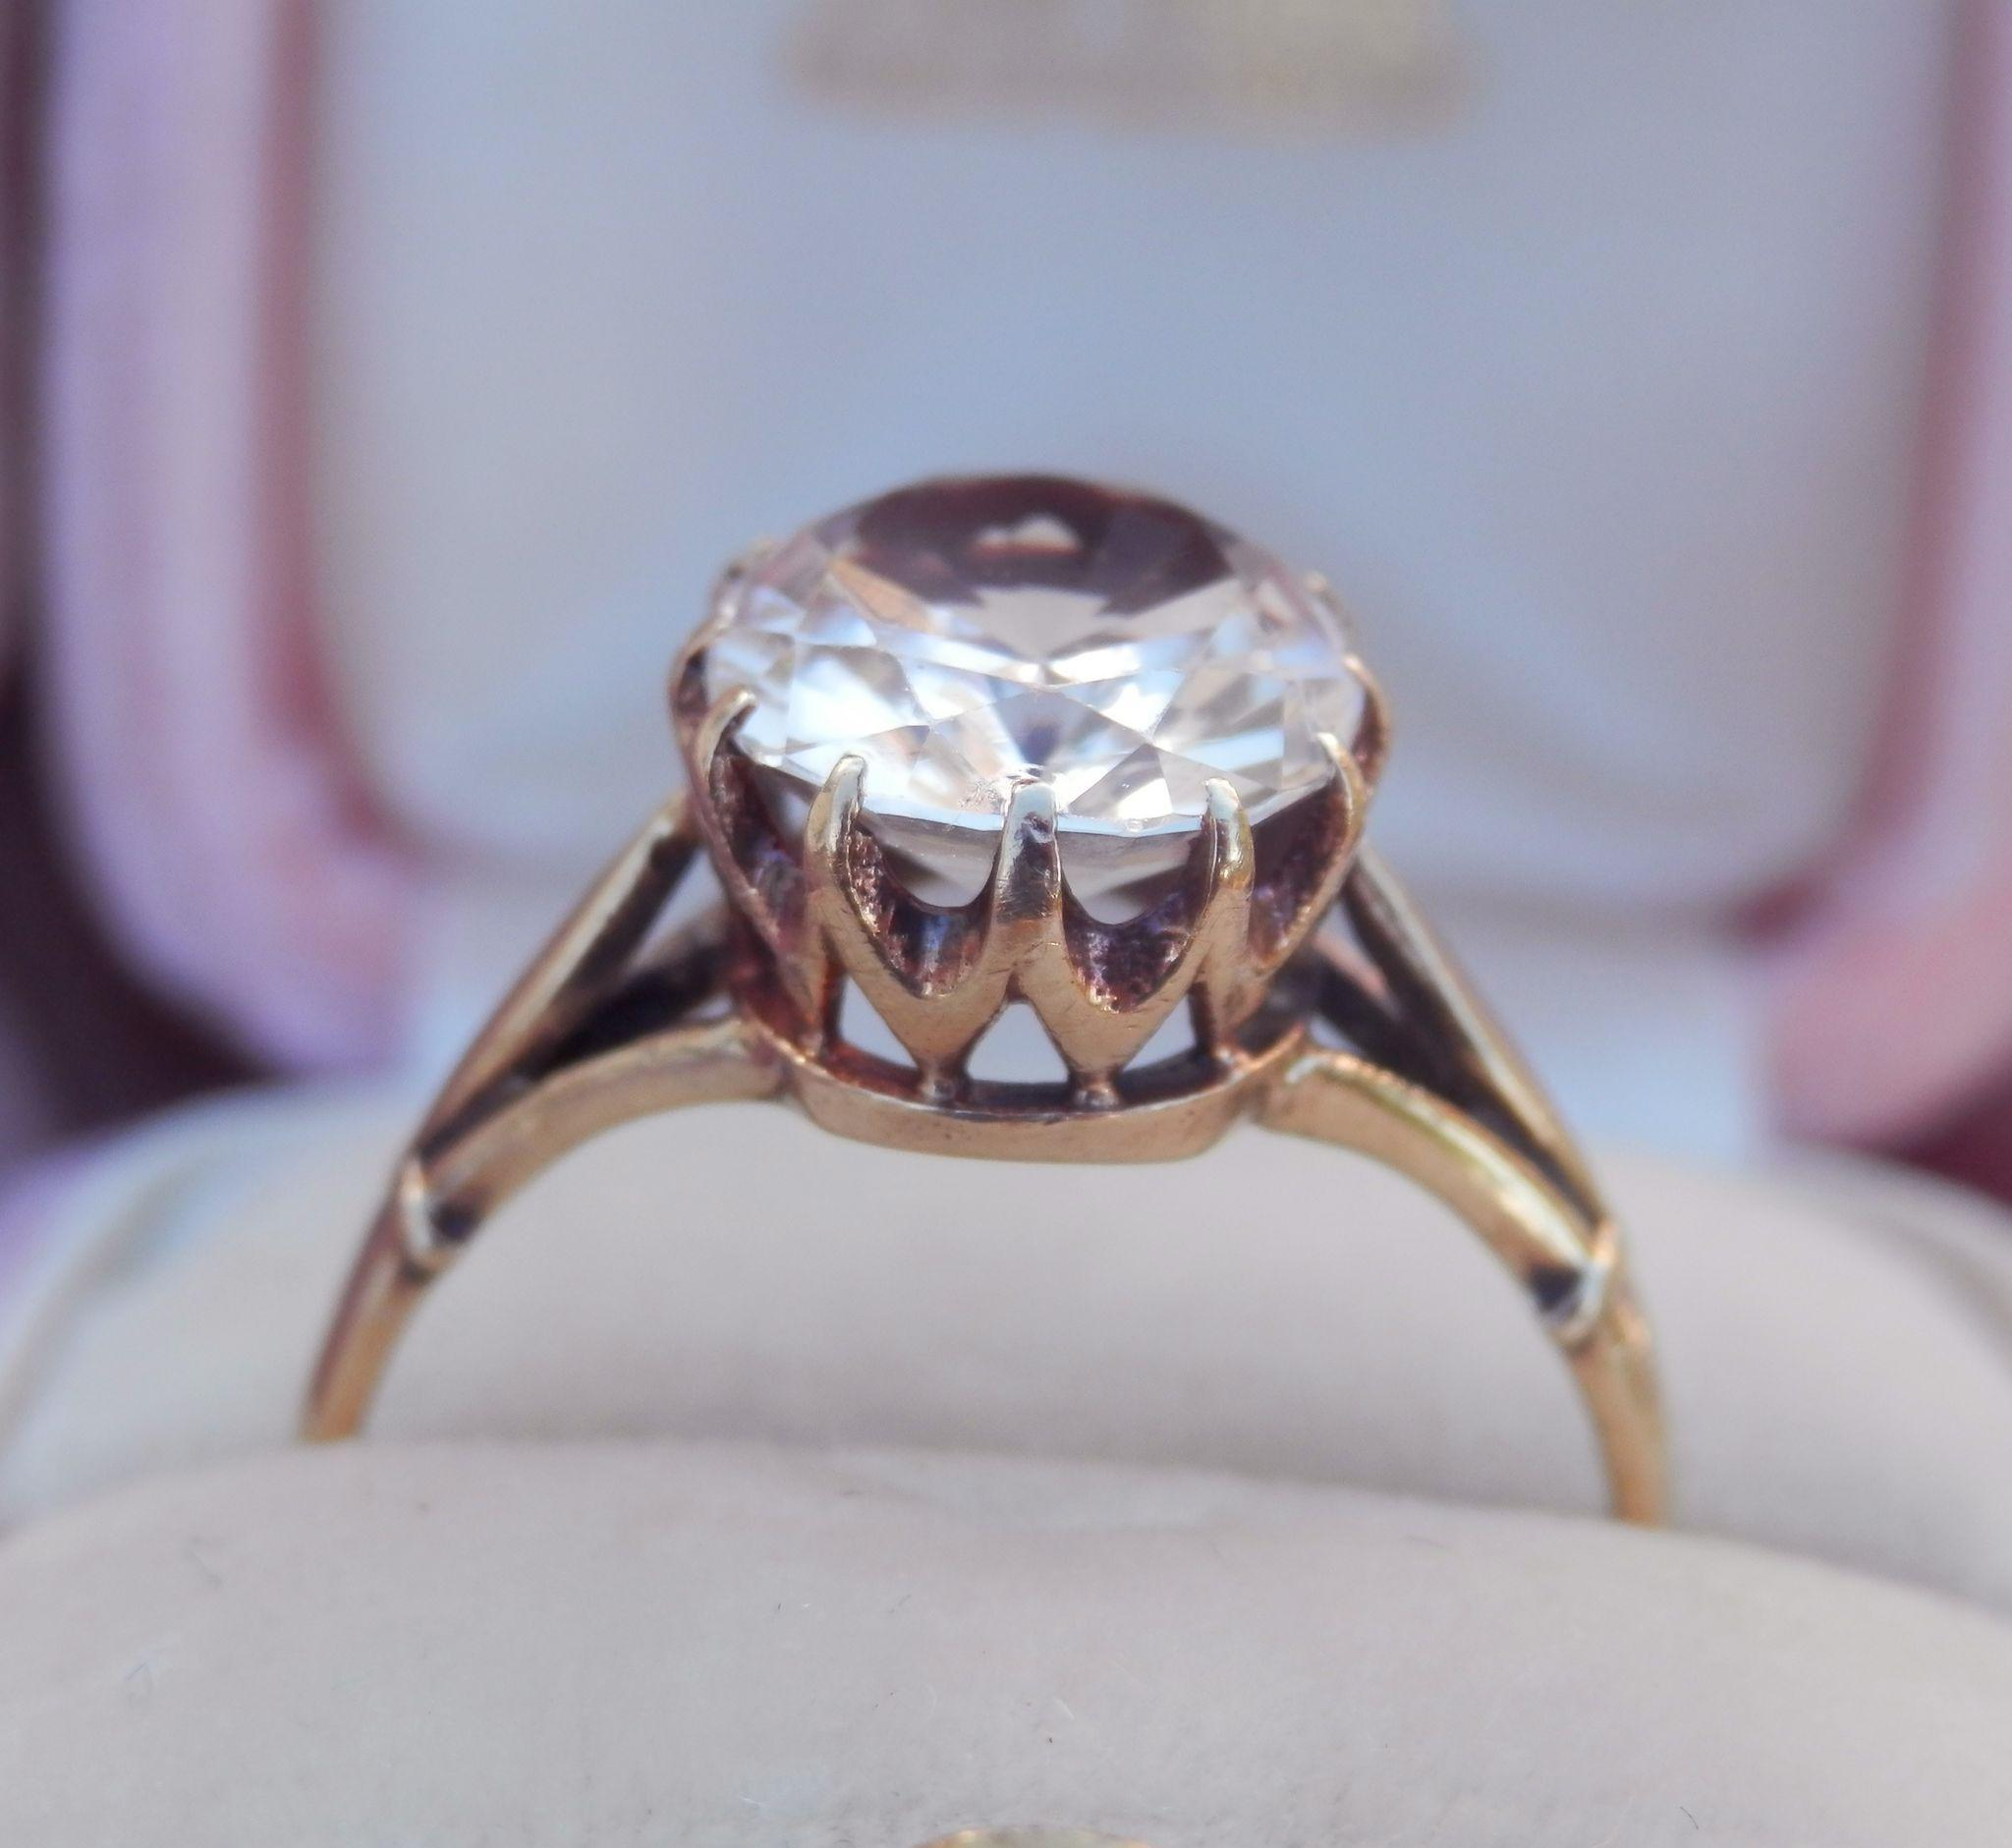 Lovely 9CT 9K Gold Morganite Solitaire Ring~ c1970